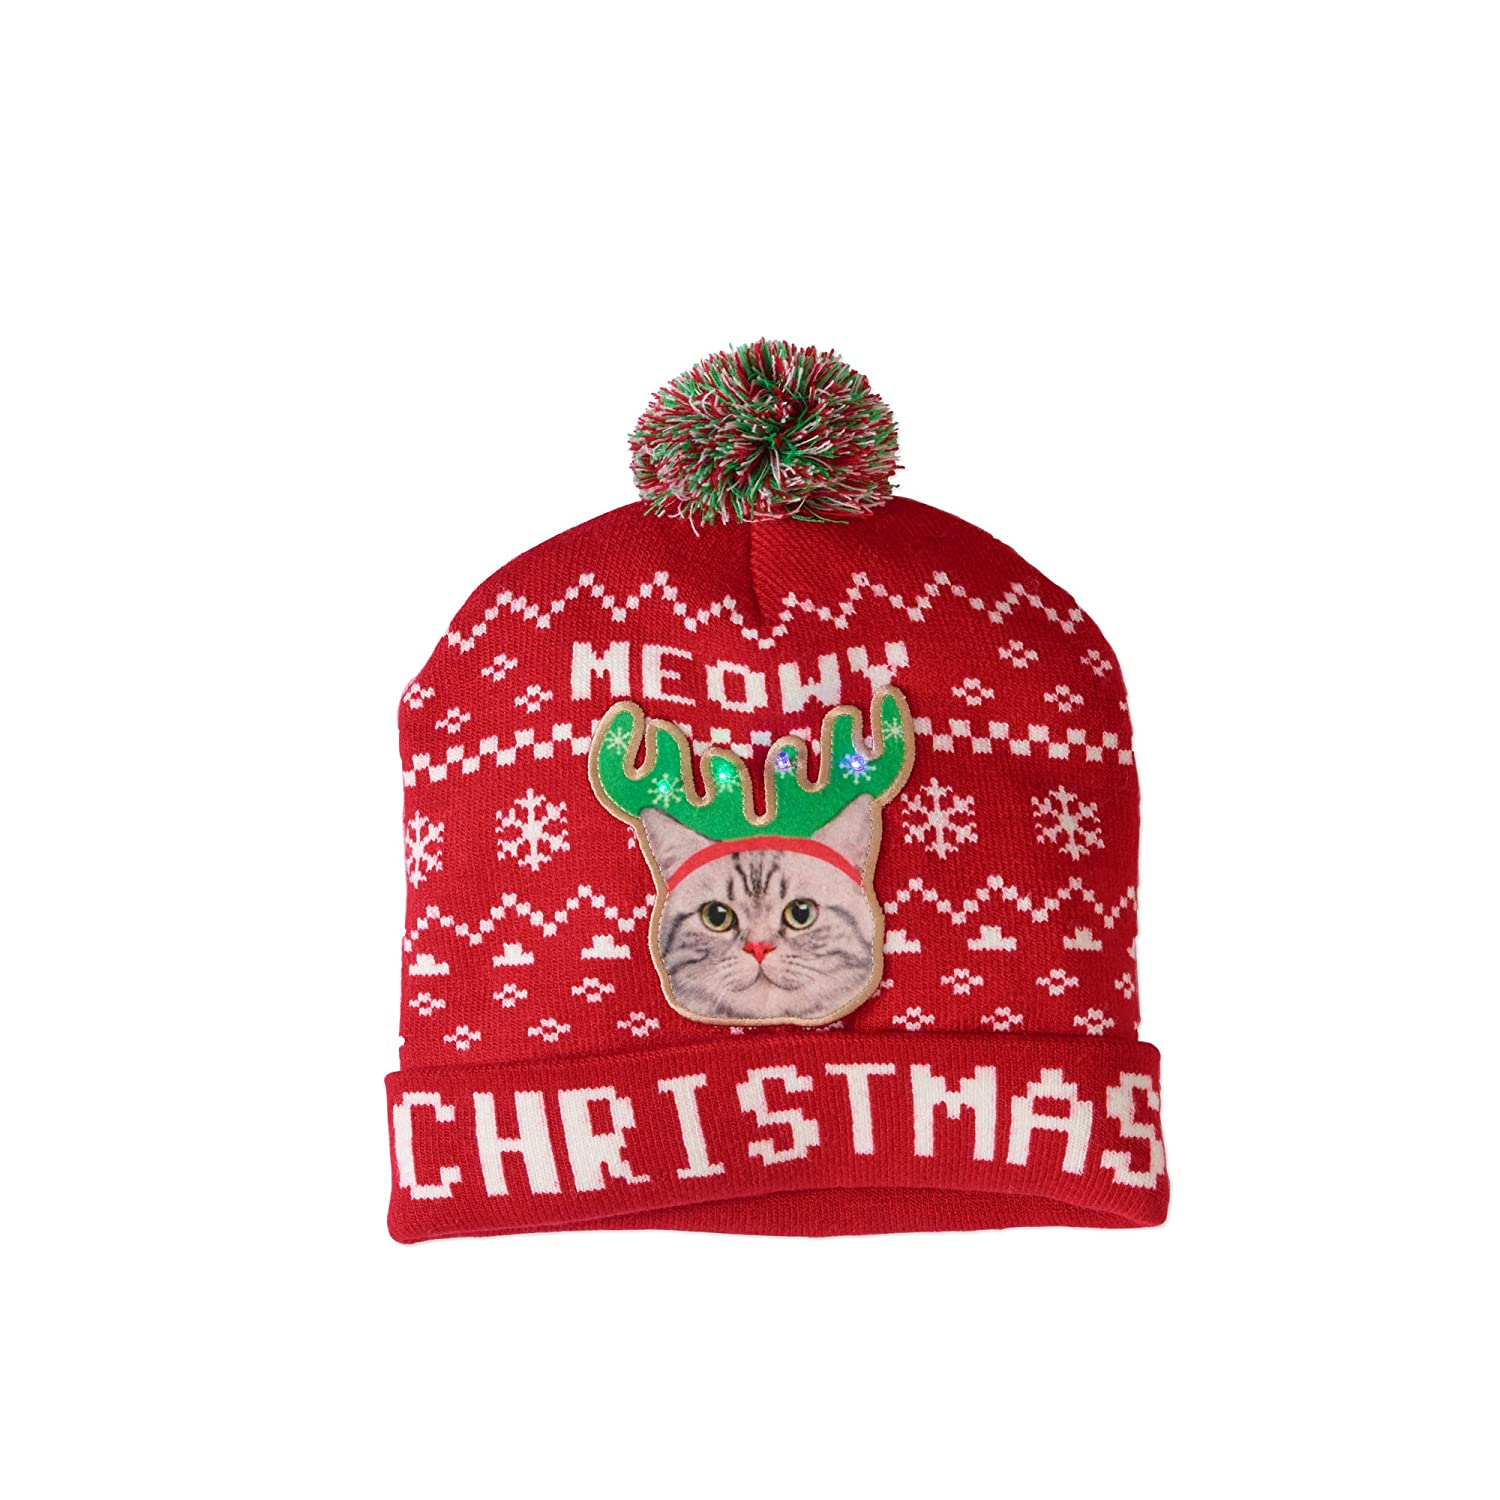 63a8cc08d44b9 Top 10 wholesale Holiday Christmas Hats - Chinabrands.com